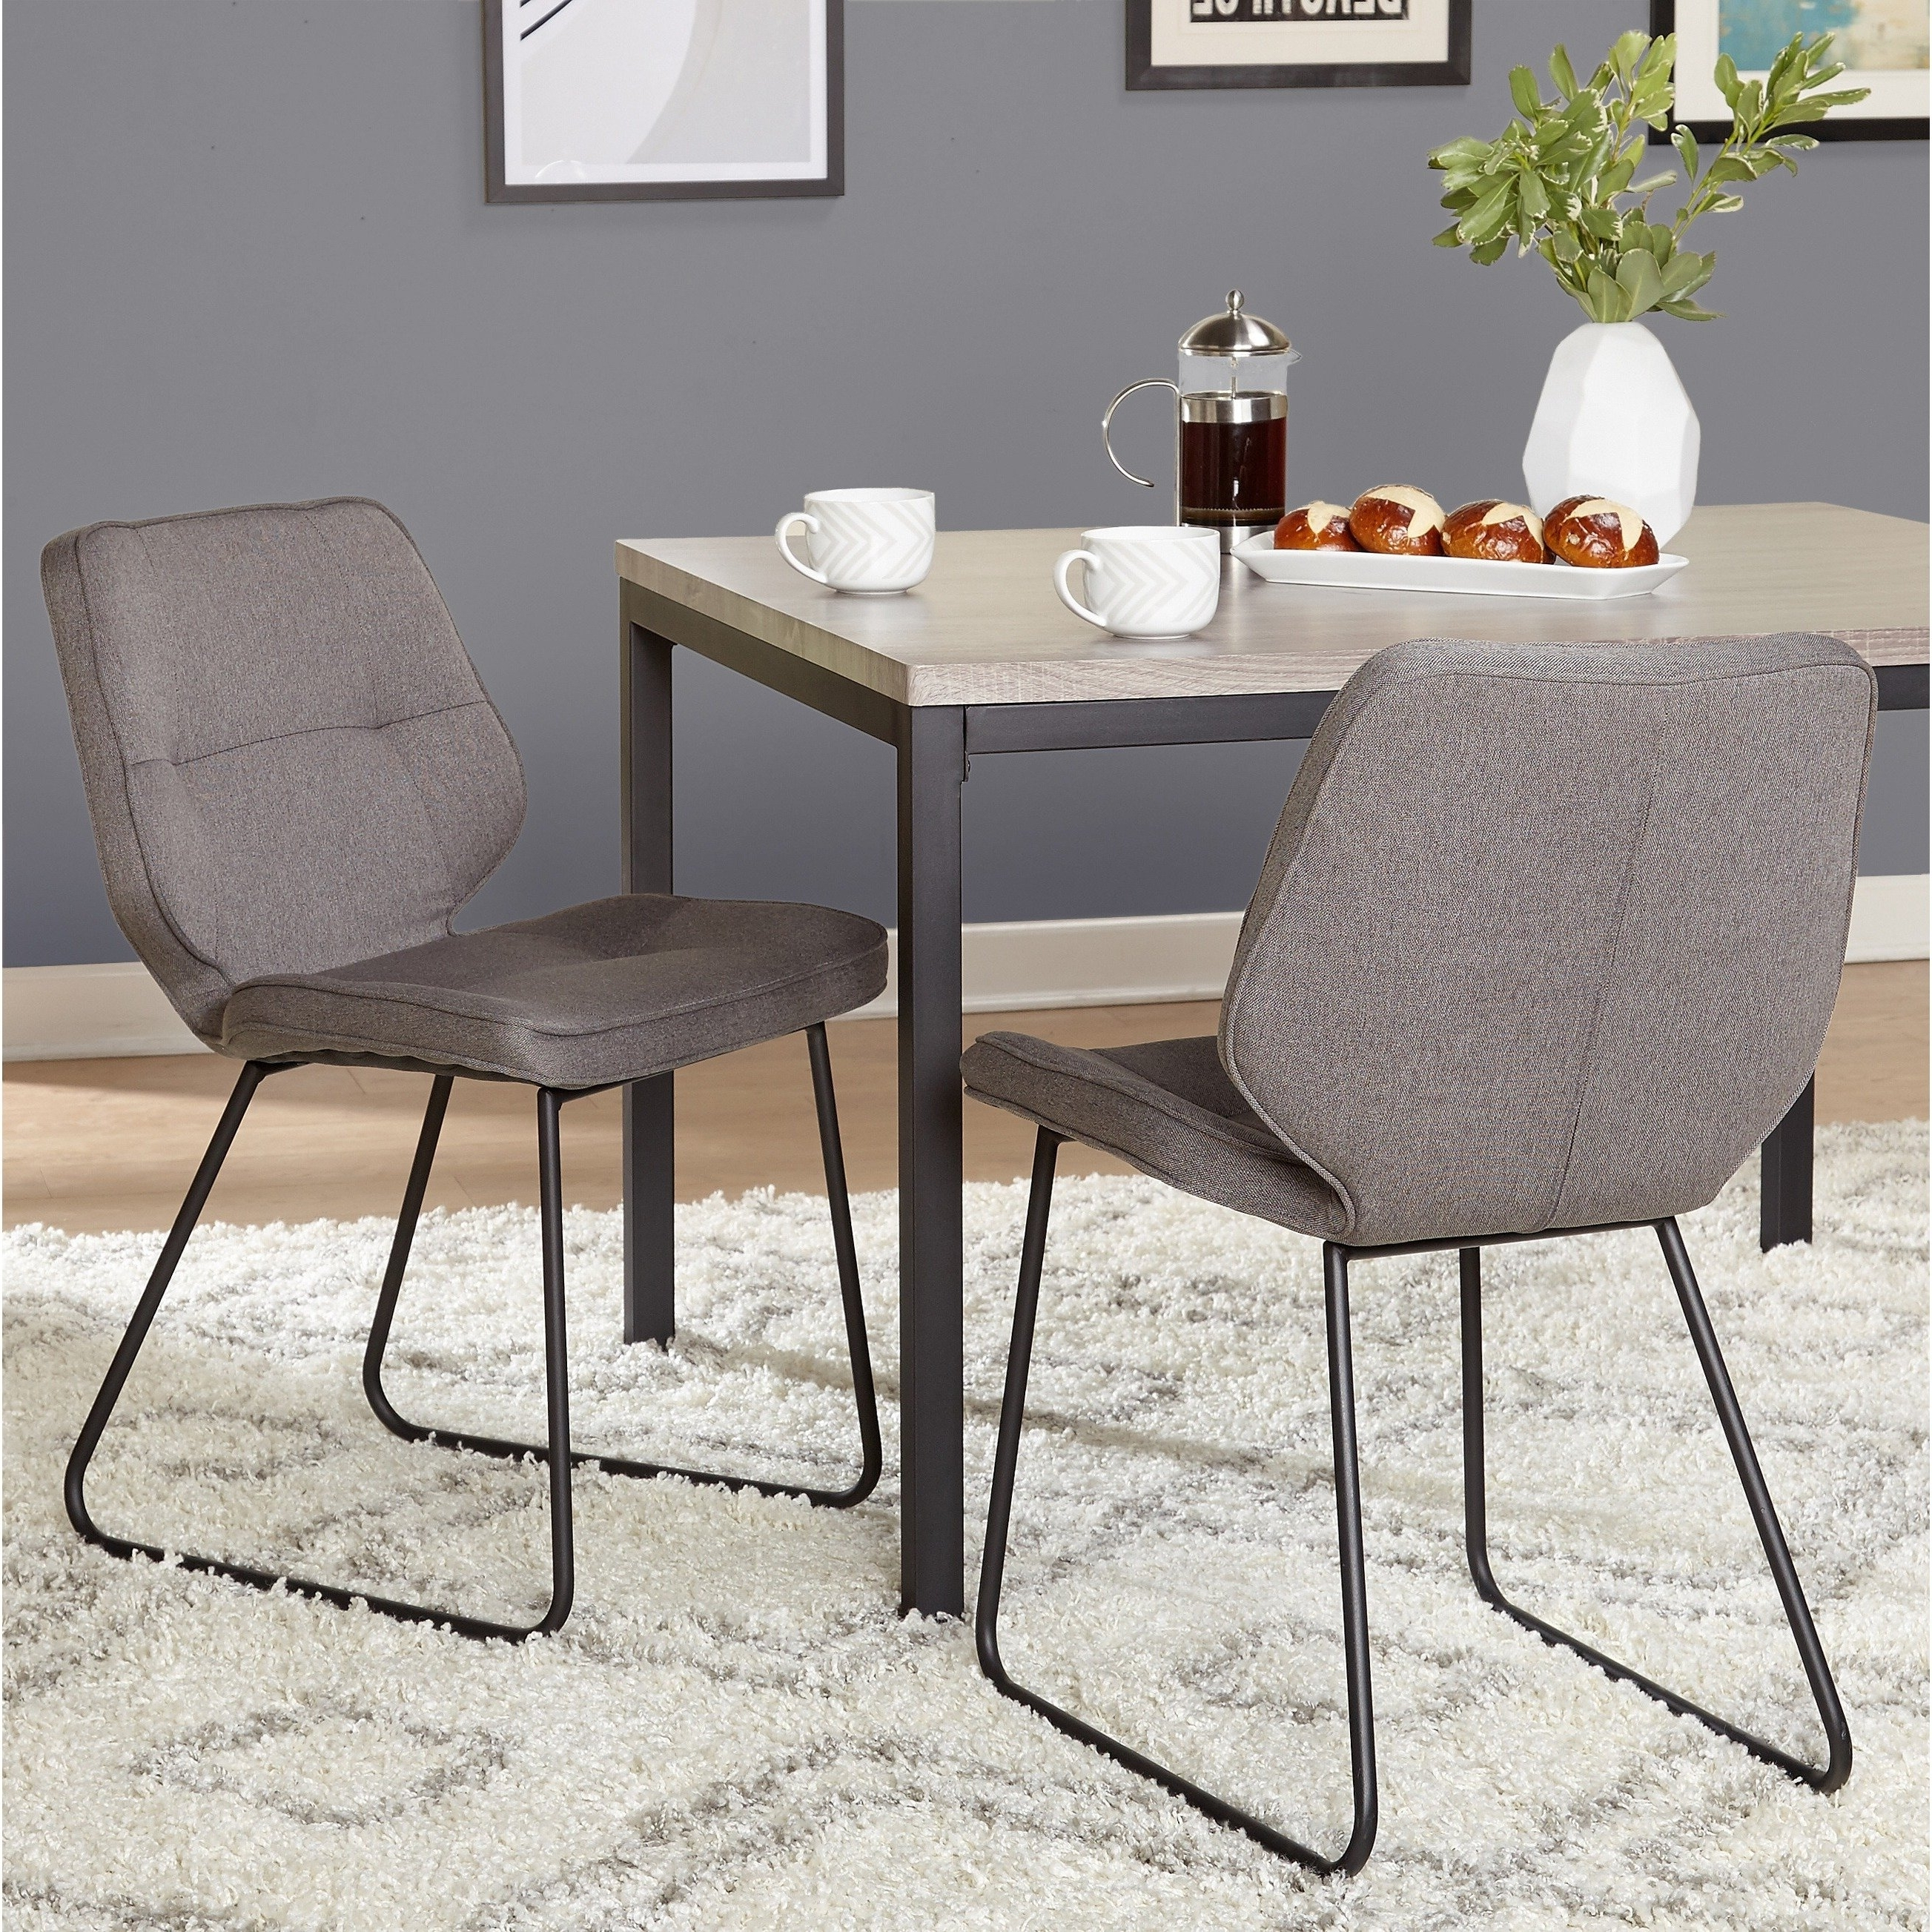 Most Recently Released Shop Simple Living Kaden Chair (Set Of 2) – Free Shipping Today Inside Caden 7 Piece Dining Sets With Upholstered Side Chair (View 14 of 25)